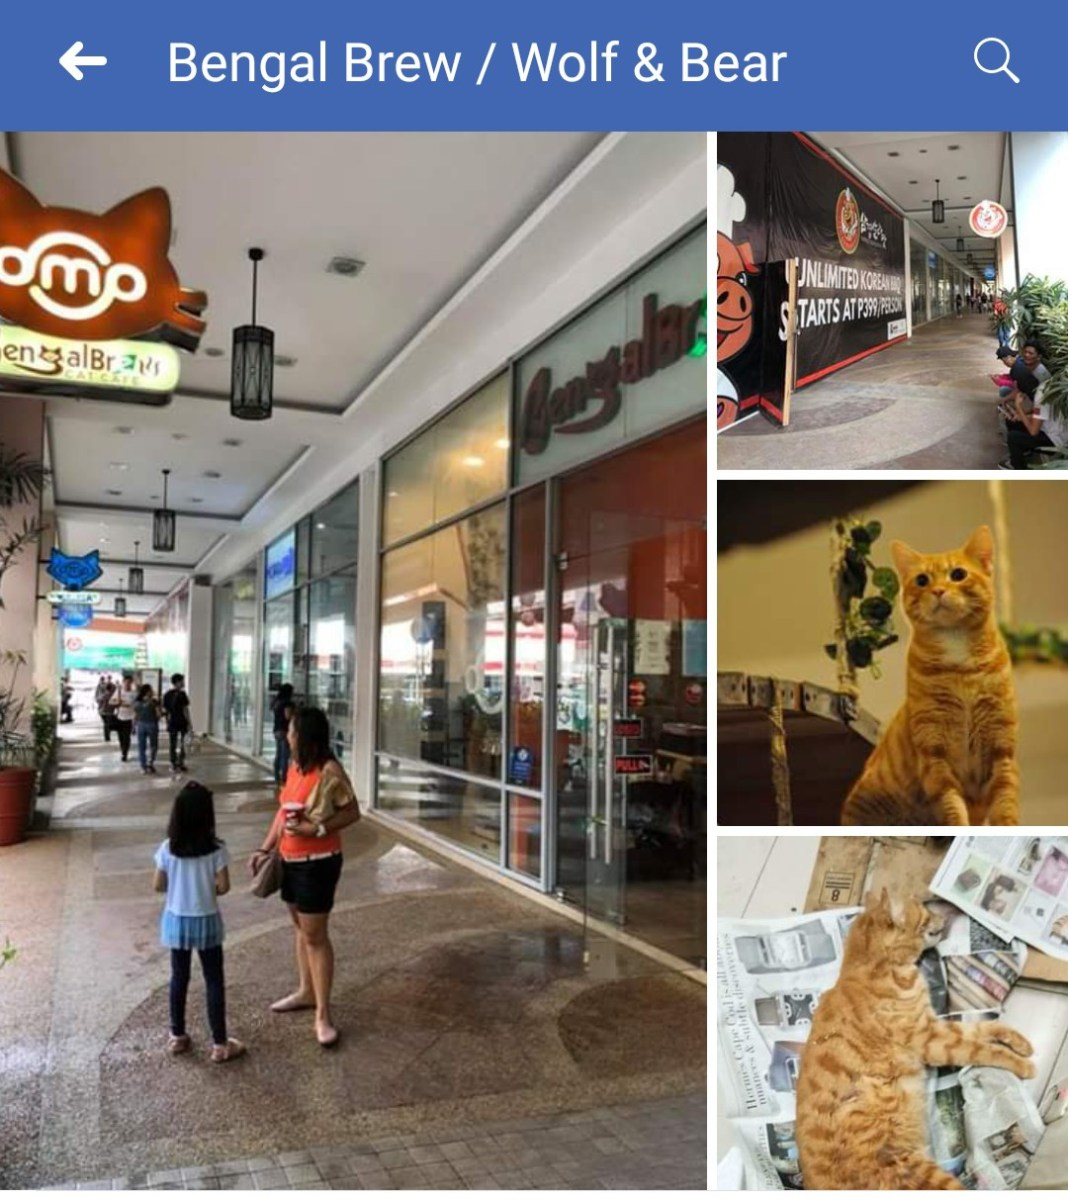 Popular Pet Cafe Bengal Brew air Concern over Cats Death Allegedly due to nearby Korean Grill